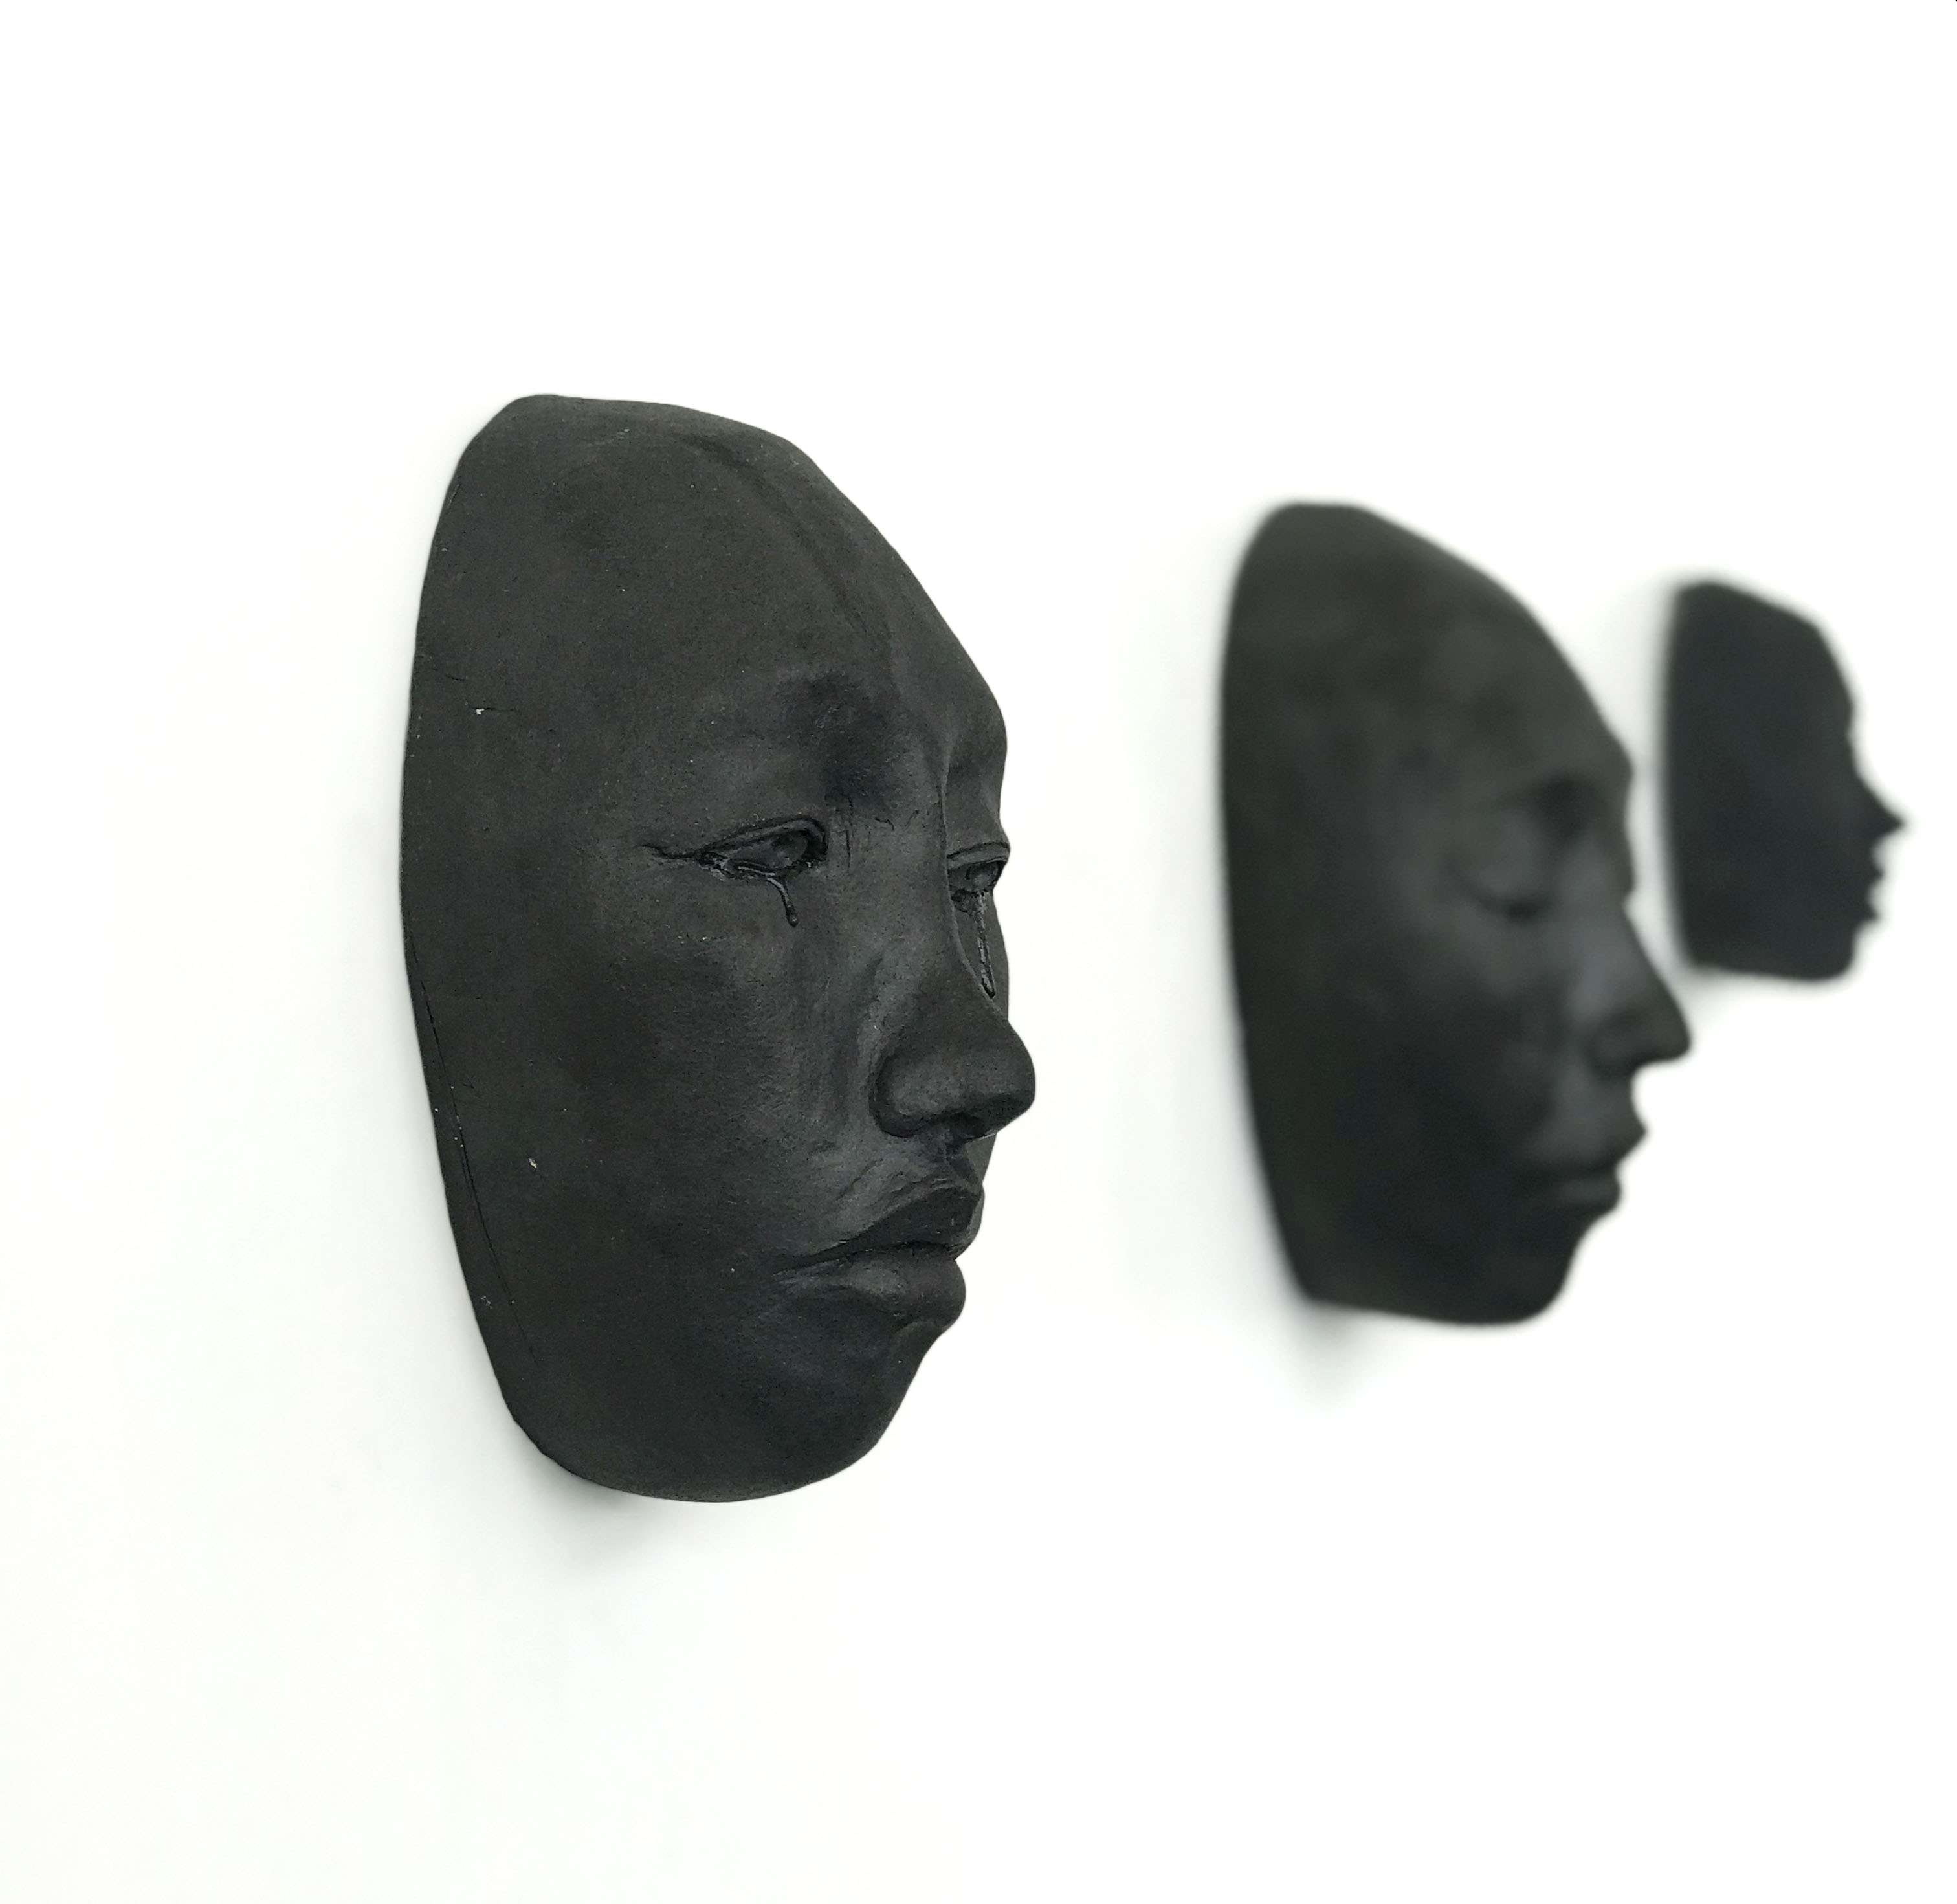 an in focus black ceramic face mounted on a white wall, with a somber facial expression and tears falling from open eyes; and two similar out of focus, black ceramic faces in the background.